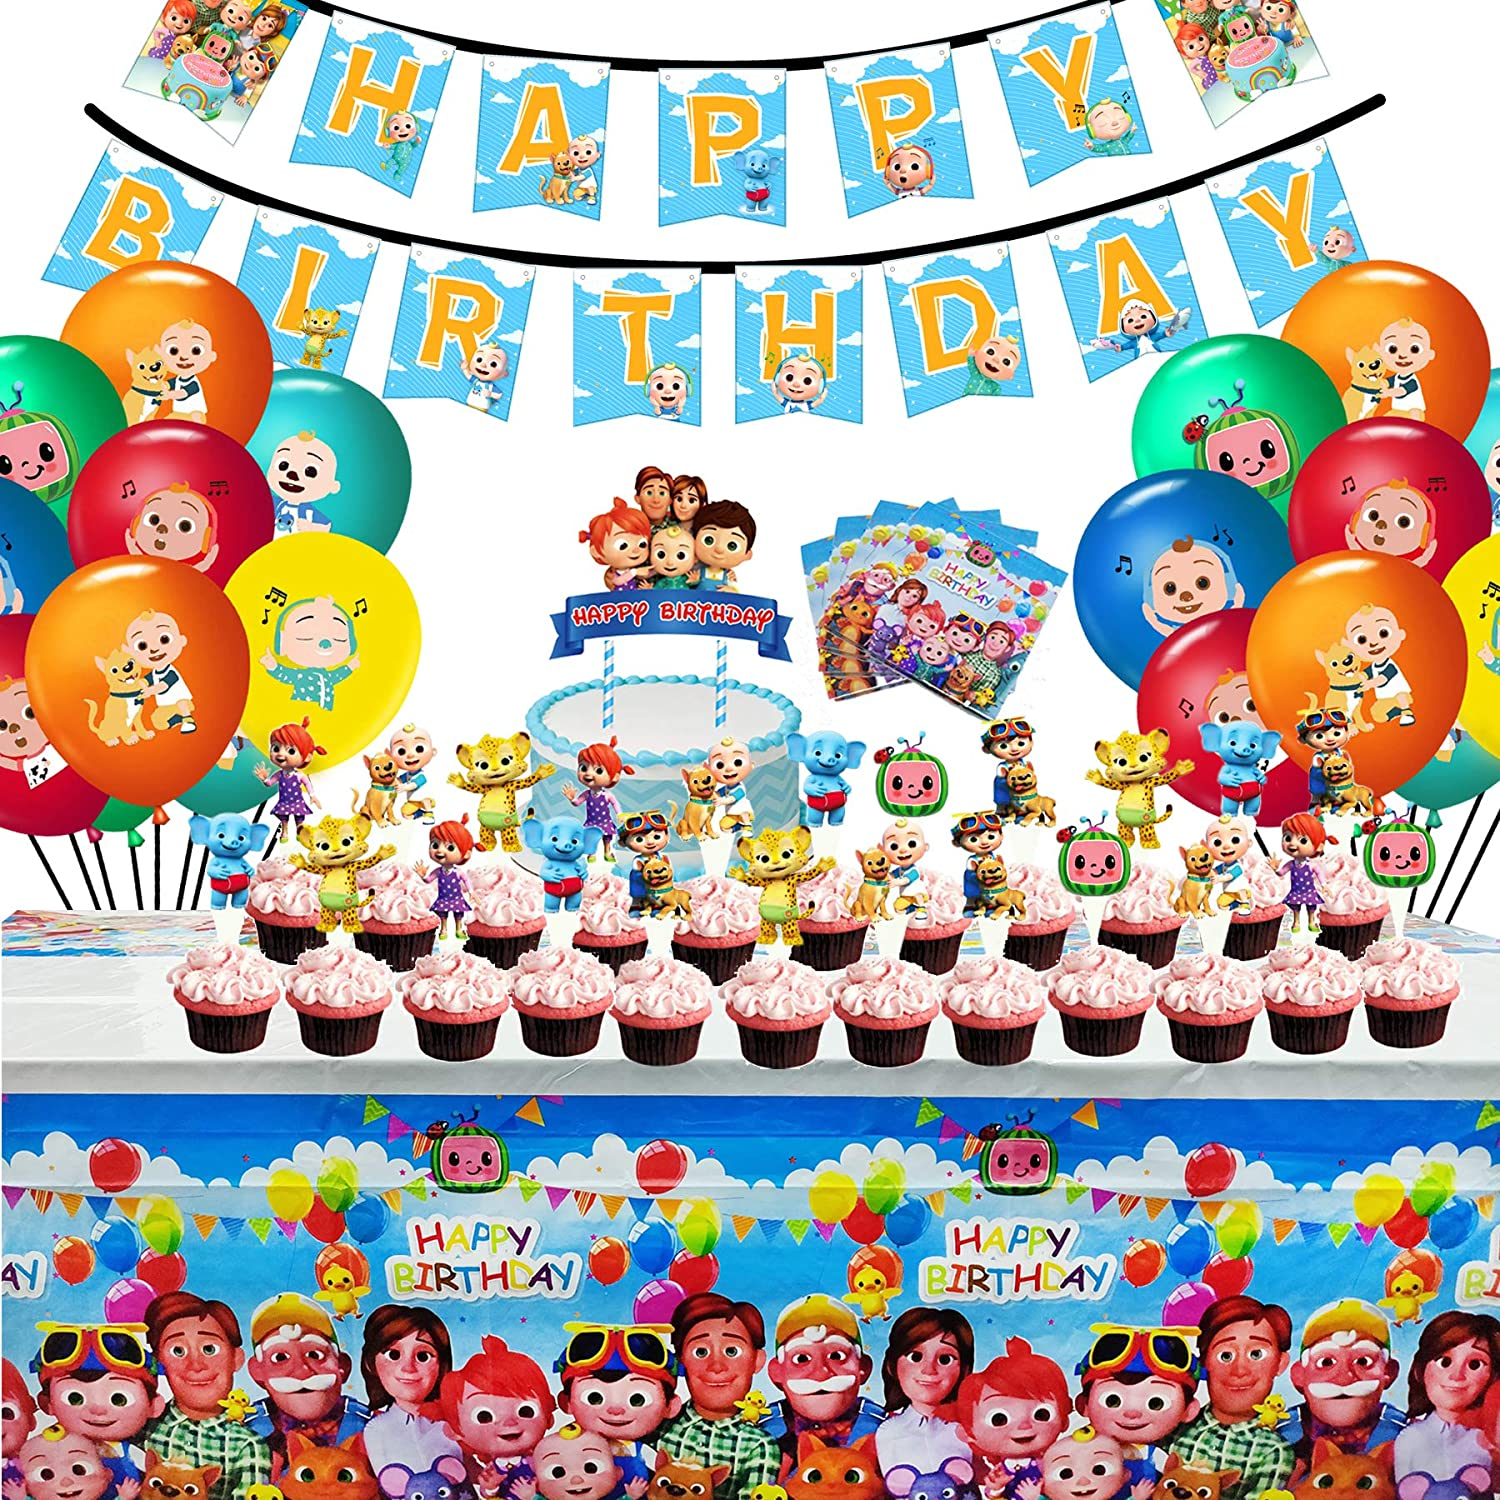 Cake Toppers Including Banner Cocomelon Birthday Party Supplies for Kids Hanging Swirls VWORK 46PCS Cocomelon Party Favor Party Decorations Table Cover Balloons